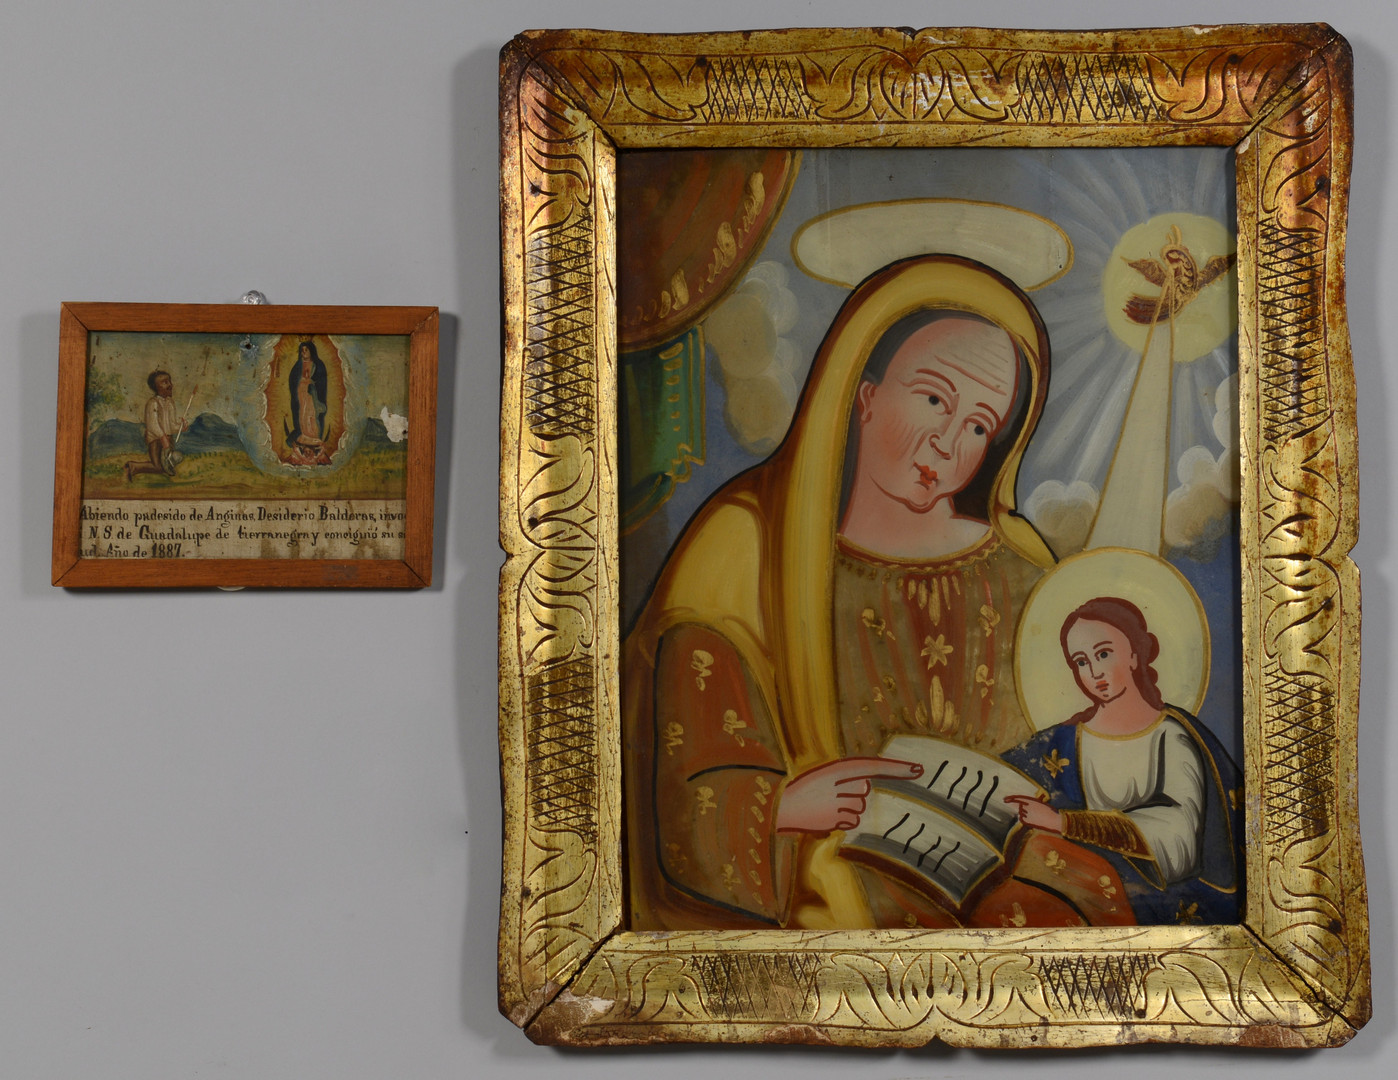 Lot 704: Religious Eglomise and Retablo